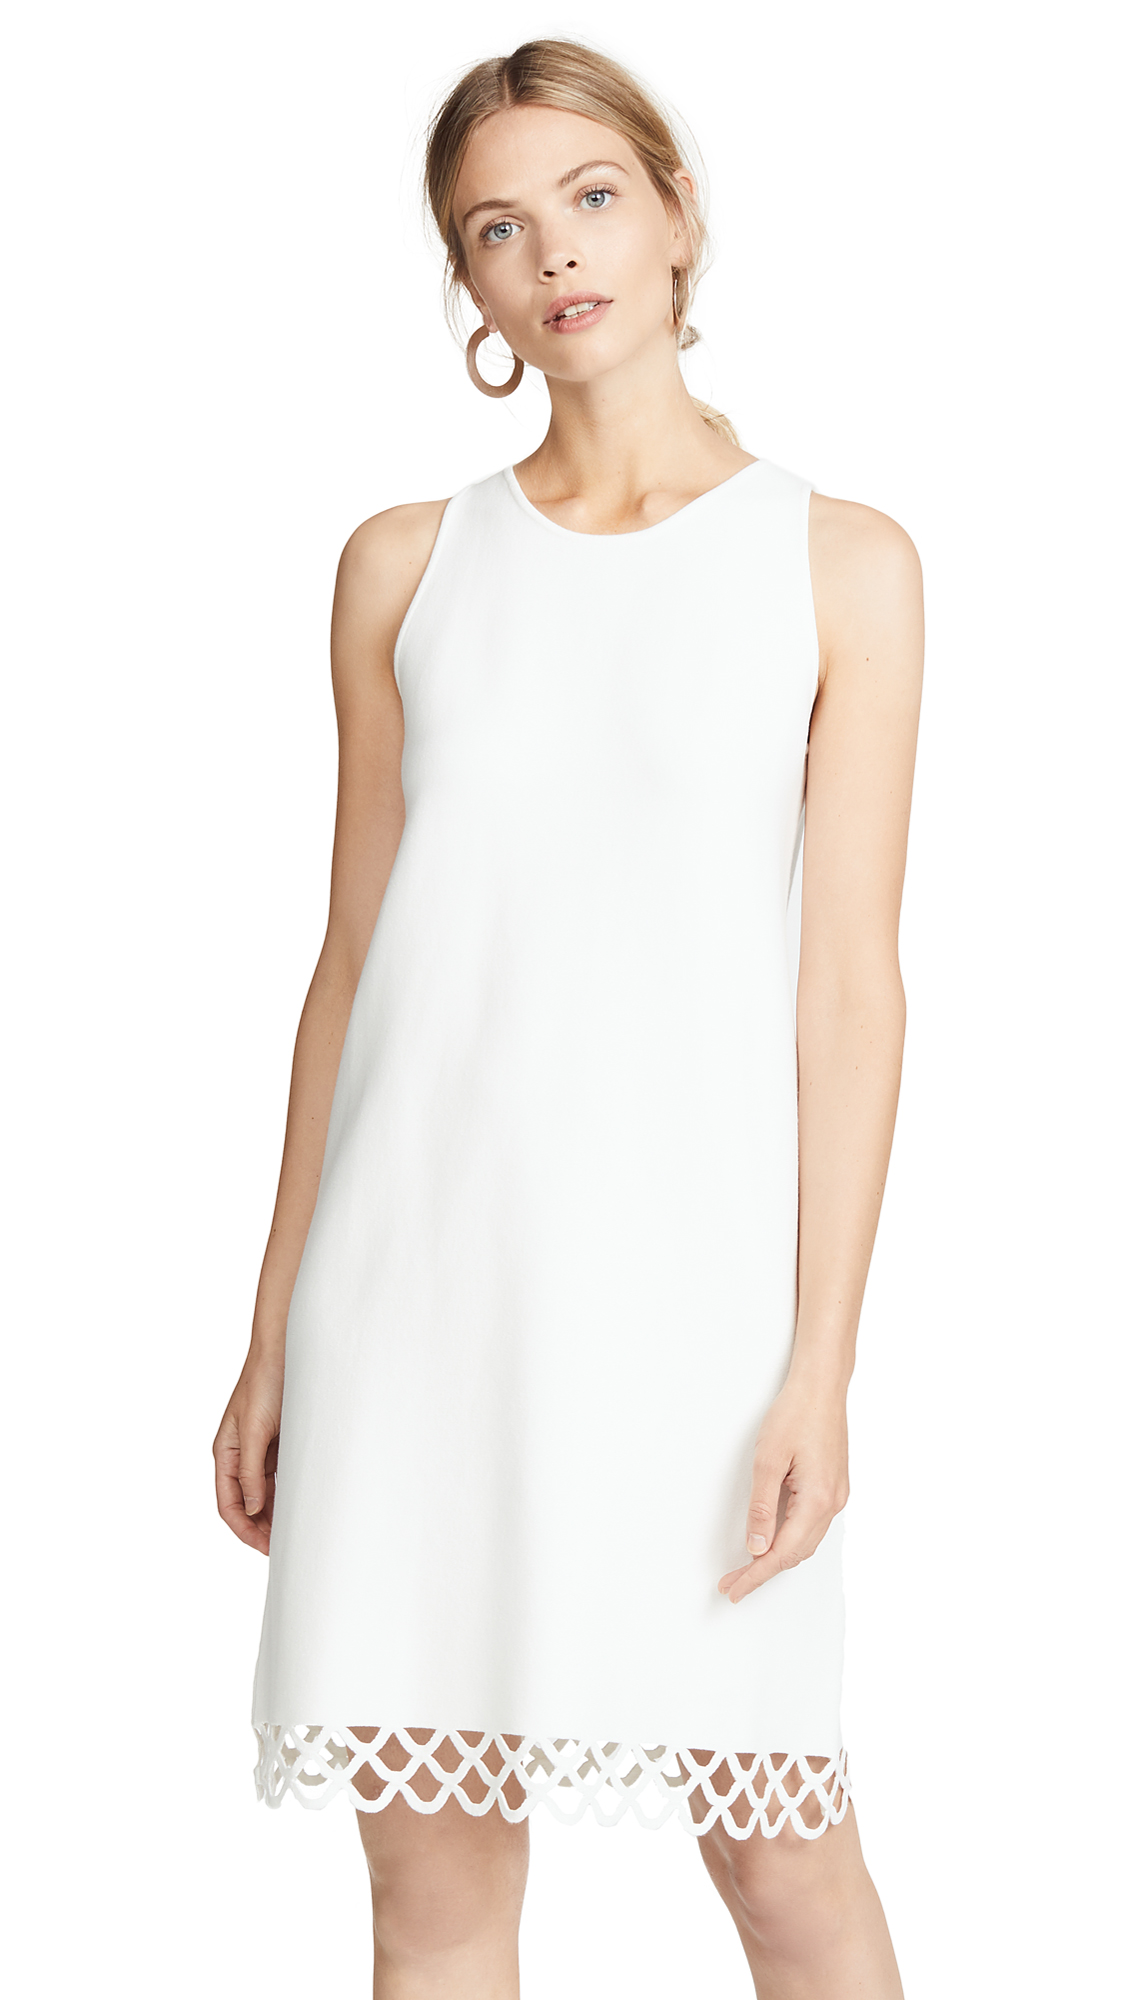 Milly Eyelet Scallop Shift Dress In White